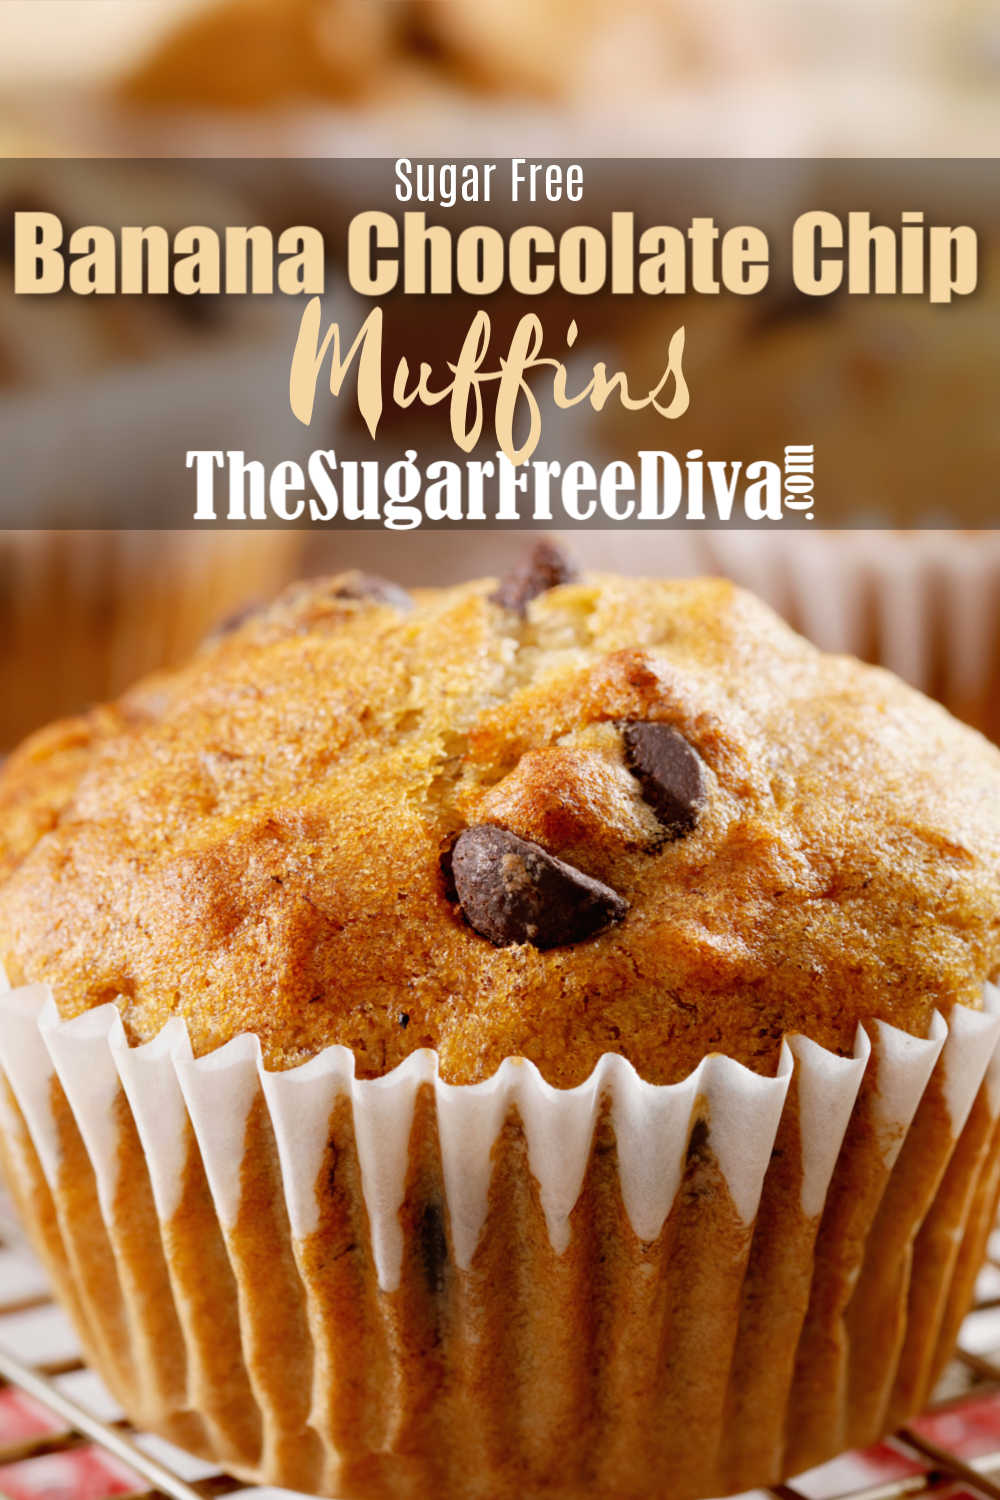 Sugar Free Banana Chocolate Chip Muffins